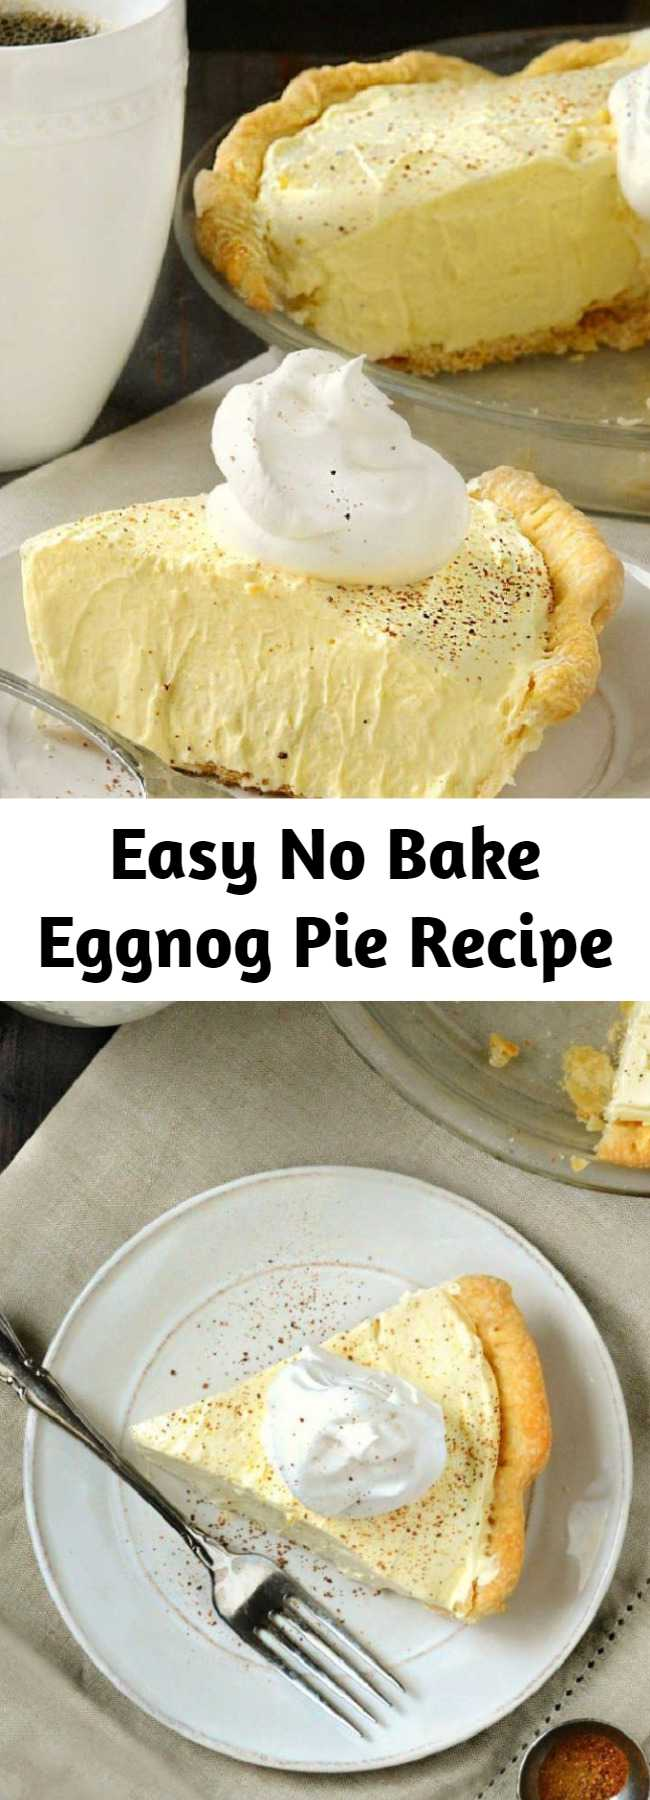 Easy No Bake Eggnog Pie Recipe - This easy no bake Eggnog Pie has won a permanent place on our Thanksgiving and Christmas dessert menus. It's light, fluffy and a family favorite!